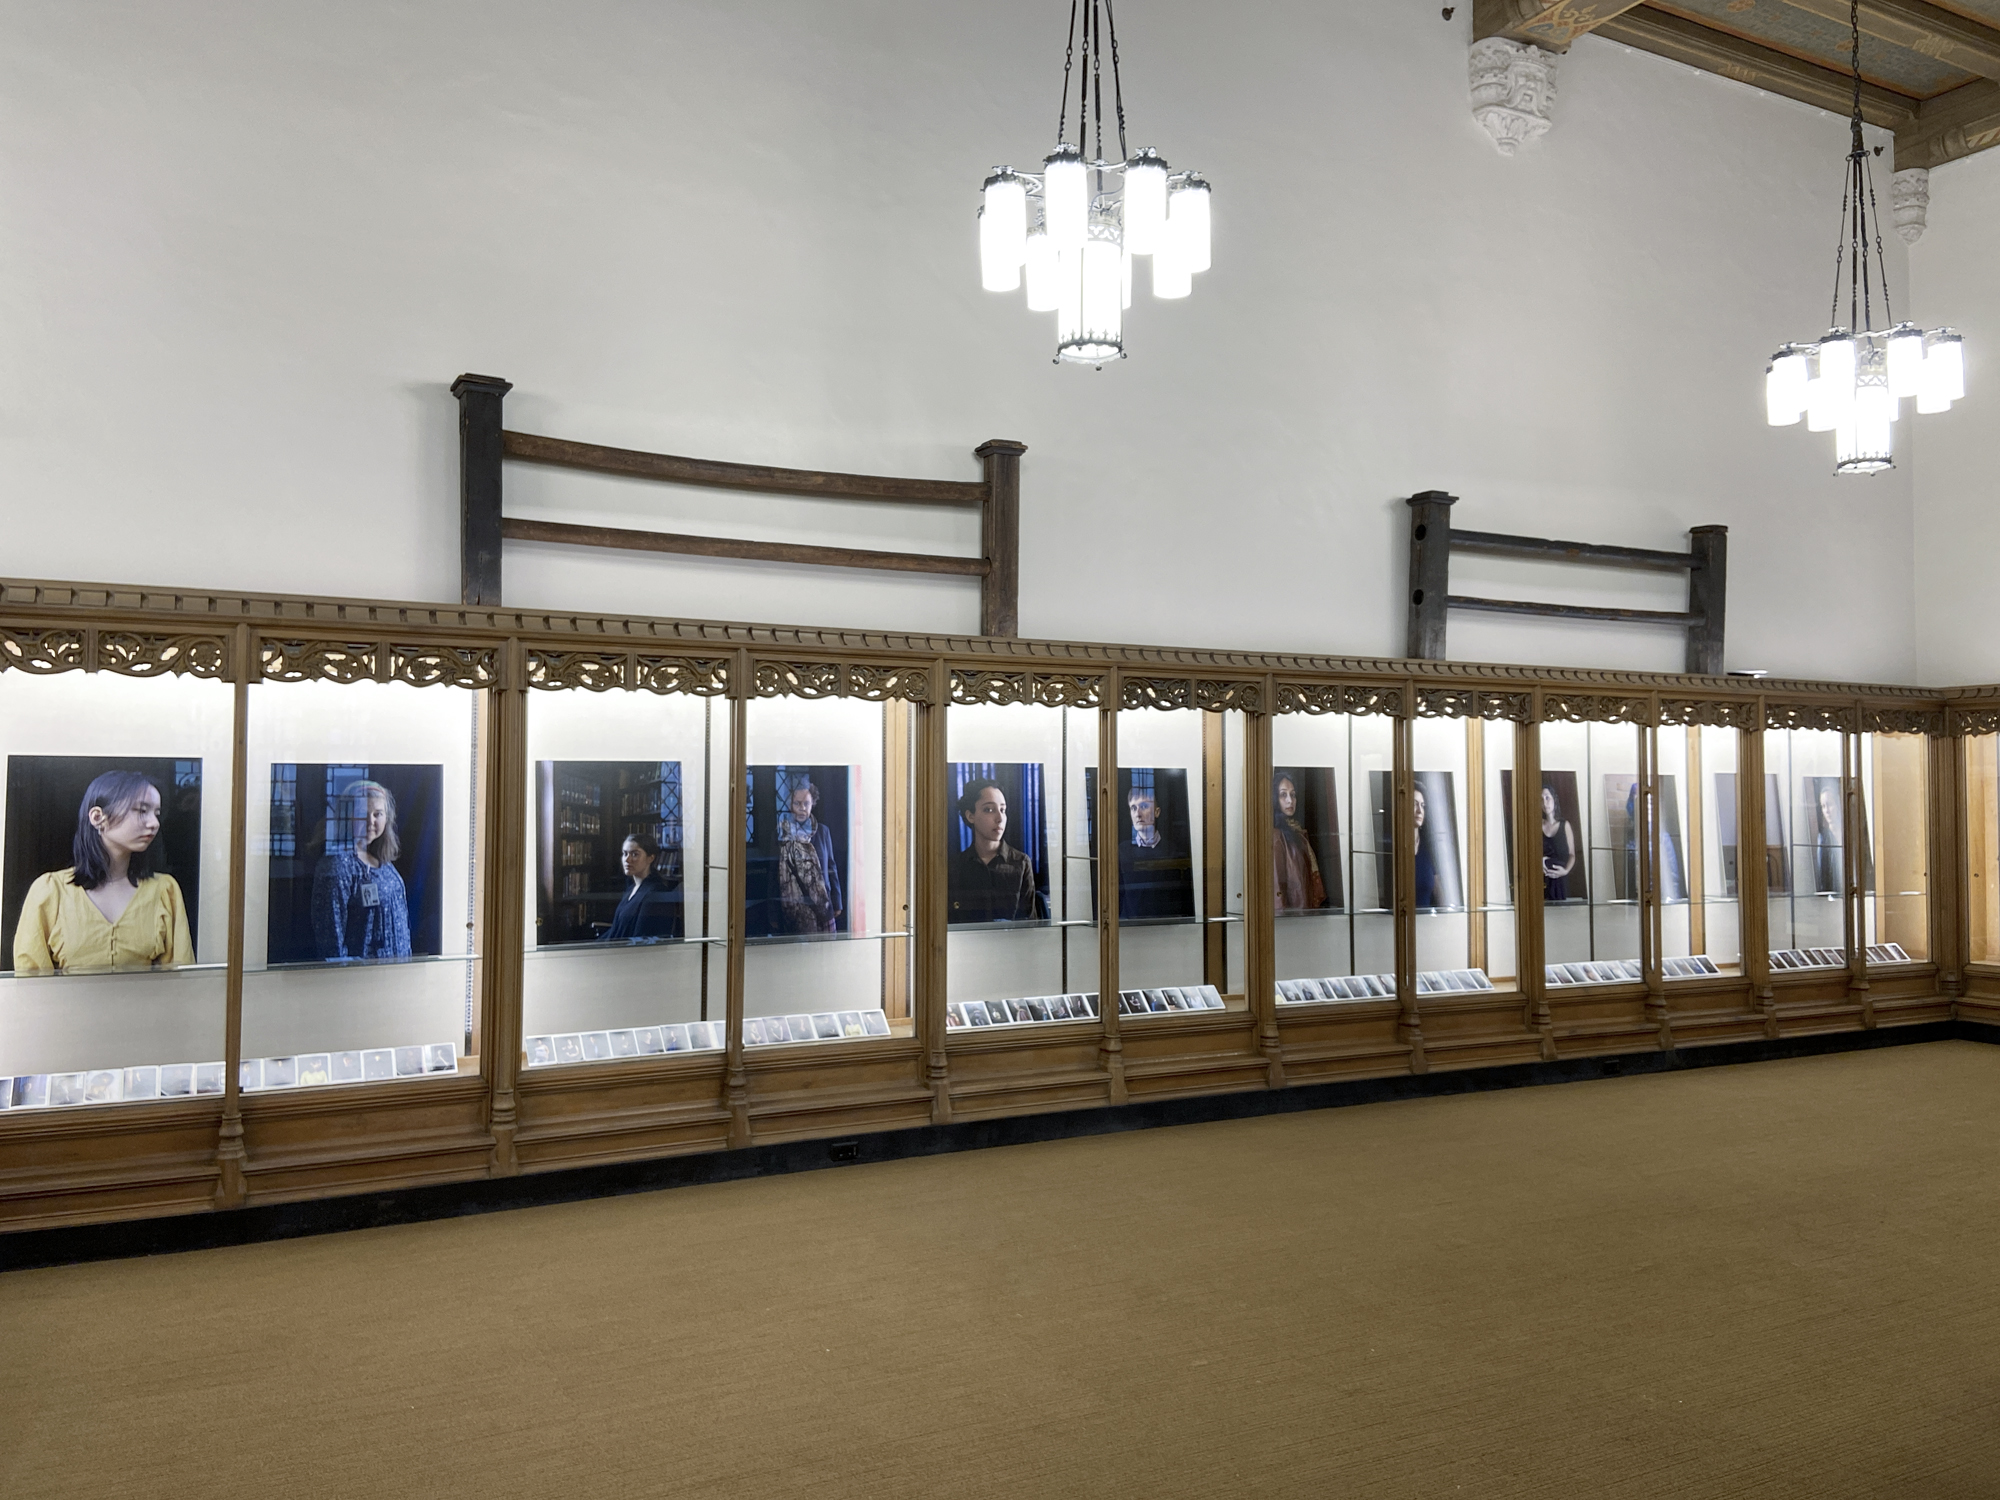 A installation shot of the 12 Portraits exhibit of a panoramic view of the wall of wooden glassed in cases showing all twelve of the photographic portraits on display in the space. Below the portraits, an array of small contact sheets are set out on the bottom shelf of the case in a neat row.